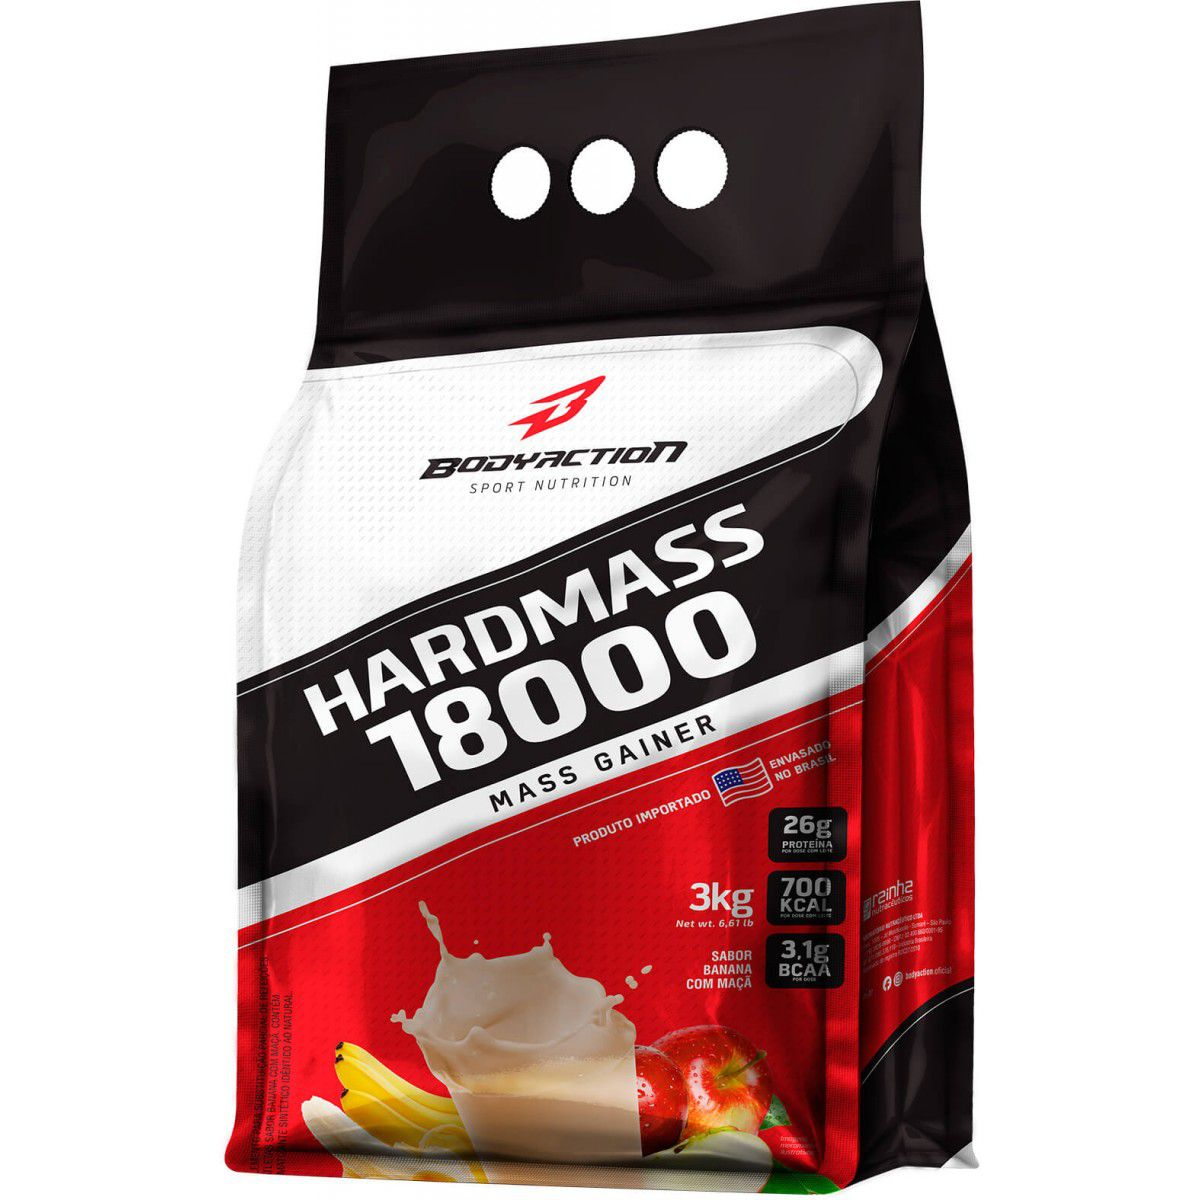 Hard Mass 18000 Mass Gainer 3kg Body Action